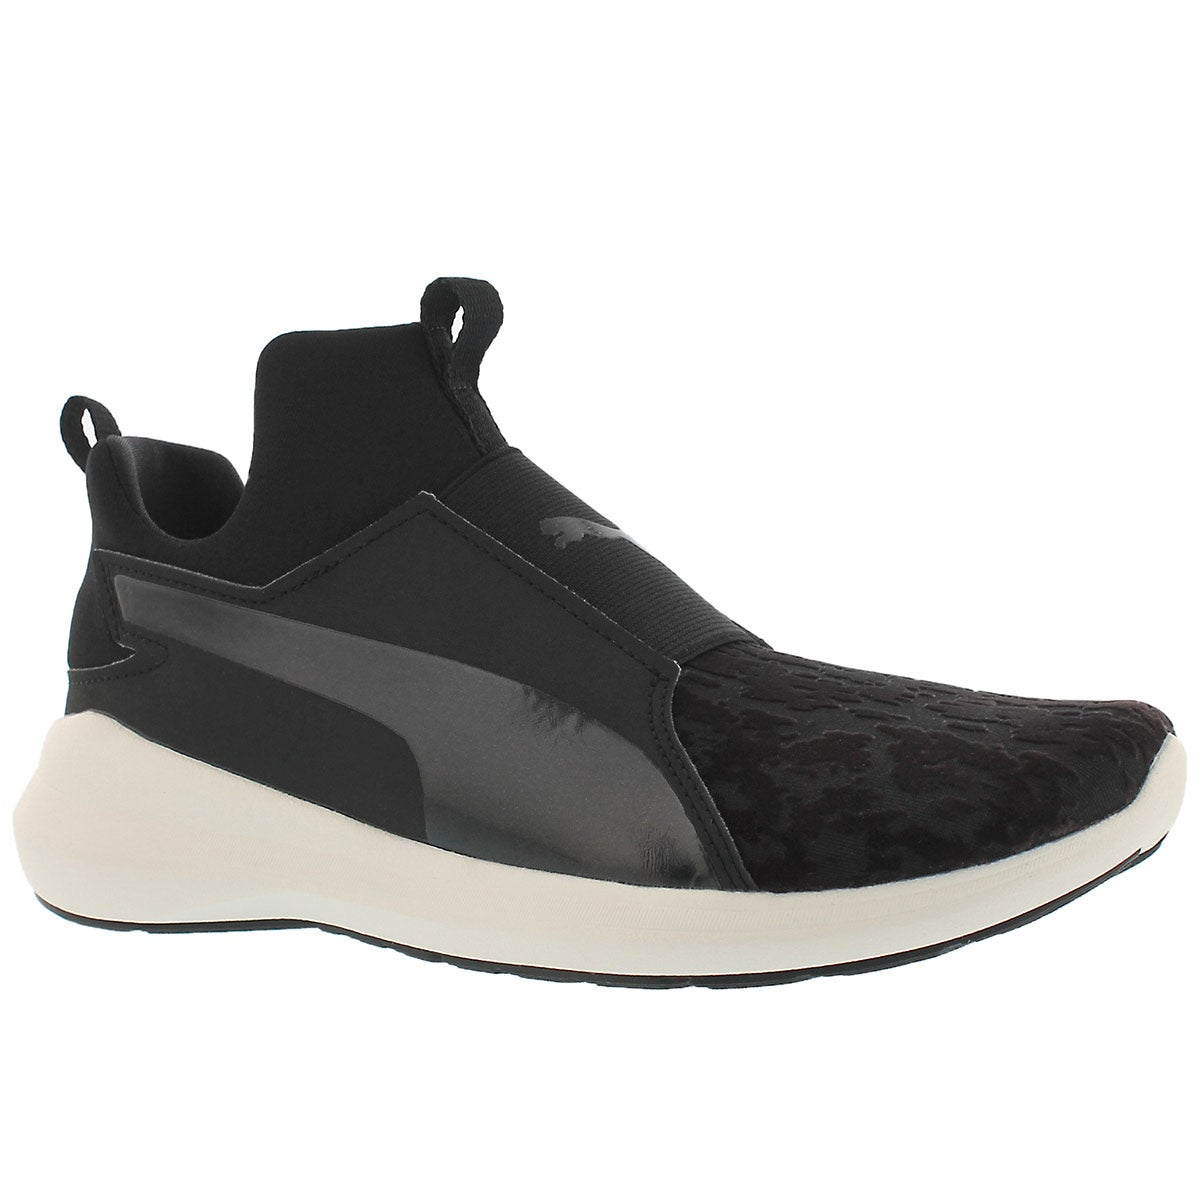 Women's REBEL MID VELVET ROPE blk slip on sneakers